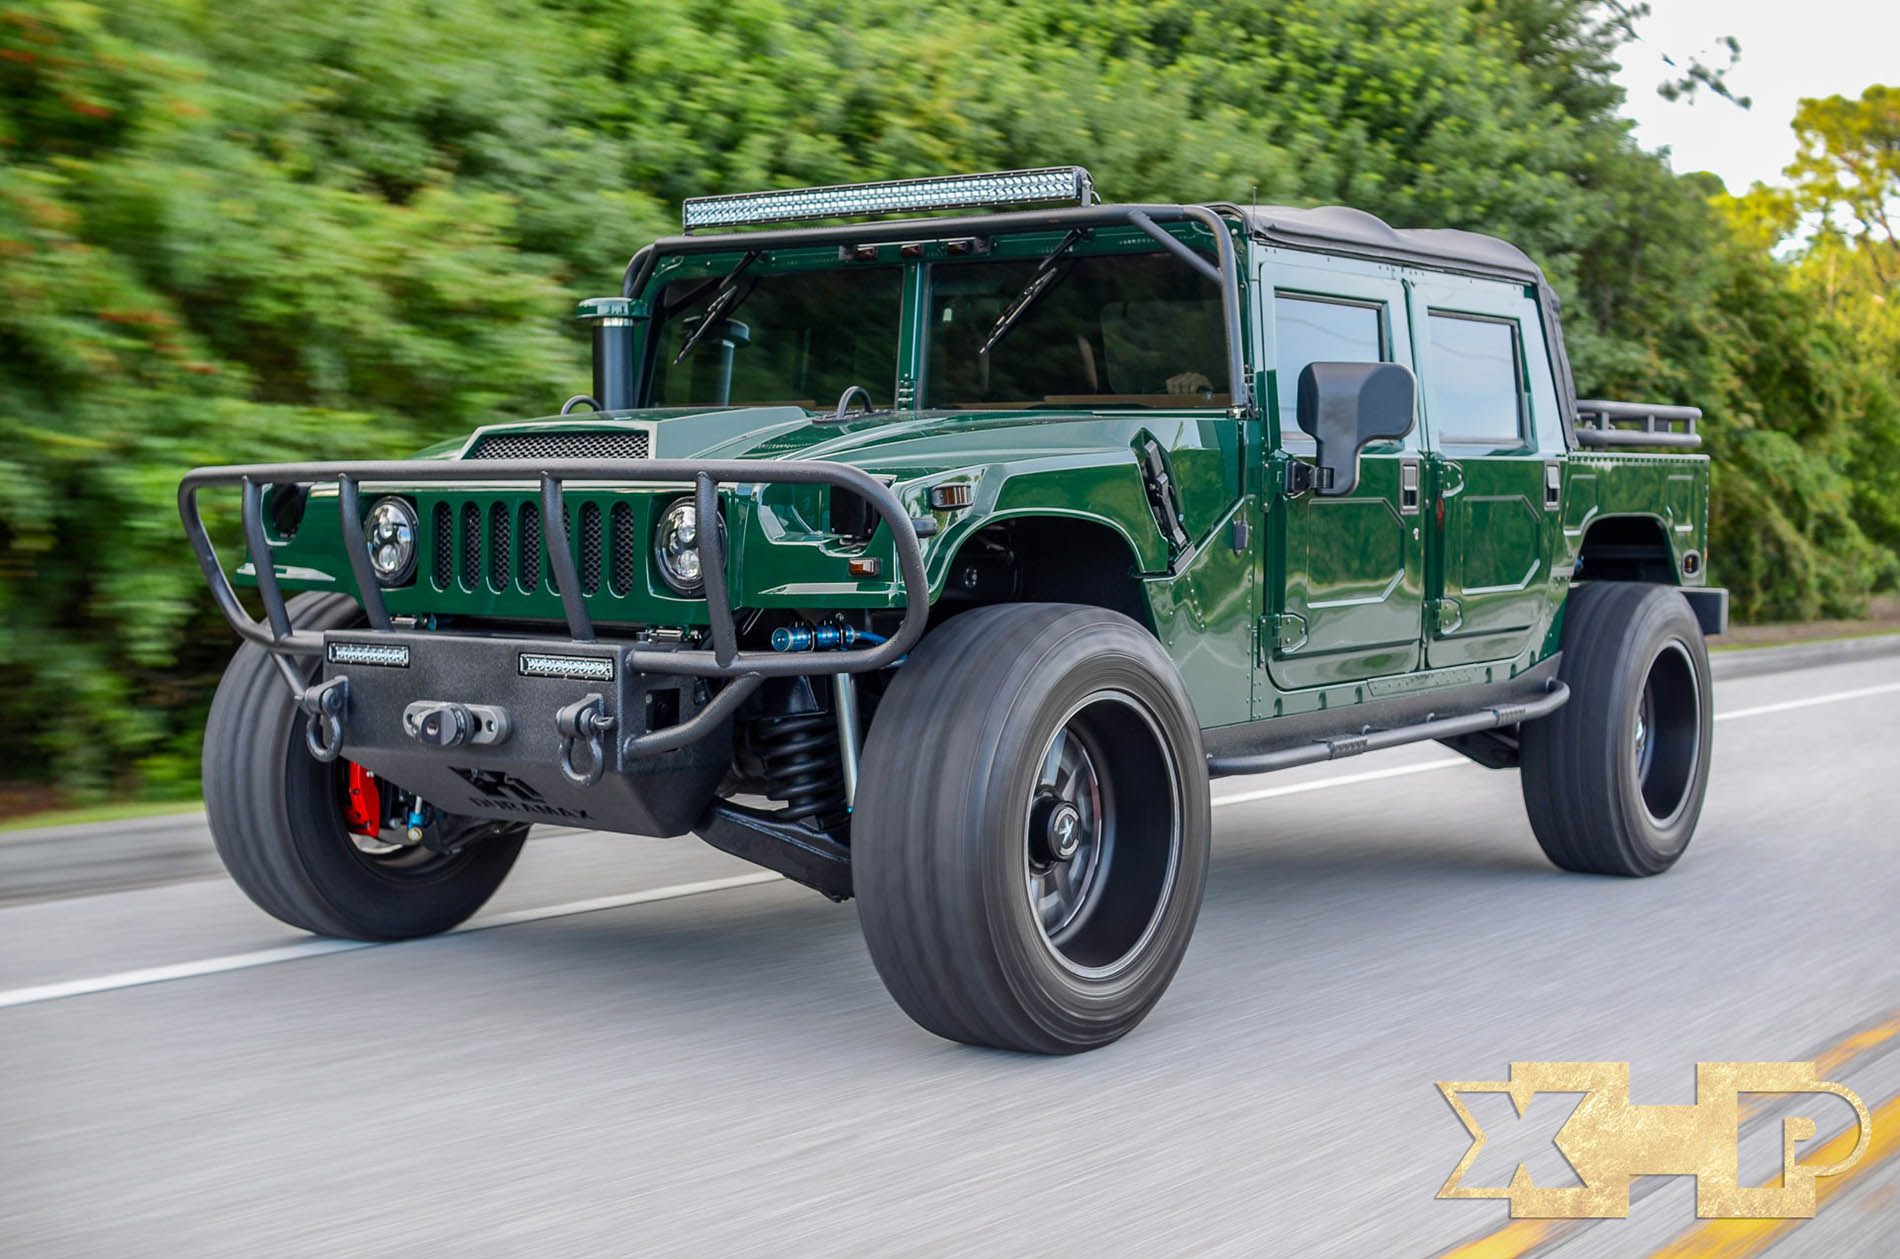 122 Hummer H12 with a Turbo Duramax V12 - engineswapdepot.com | detroit hummer